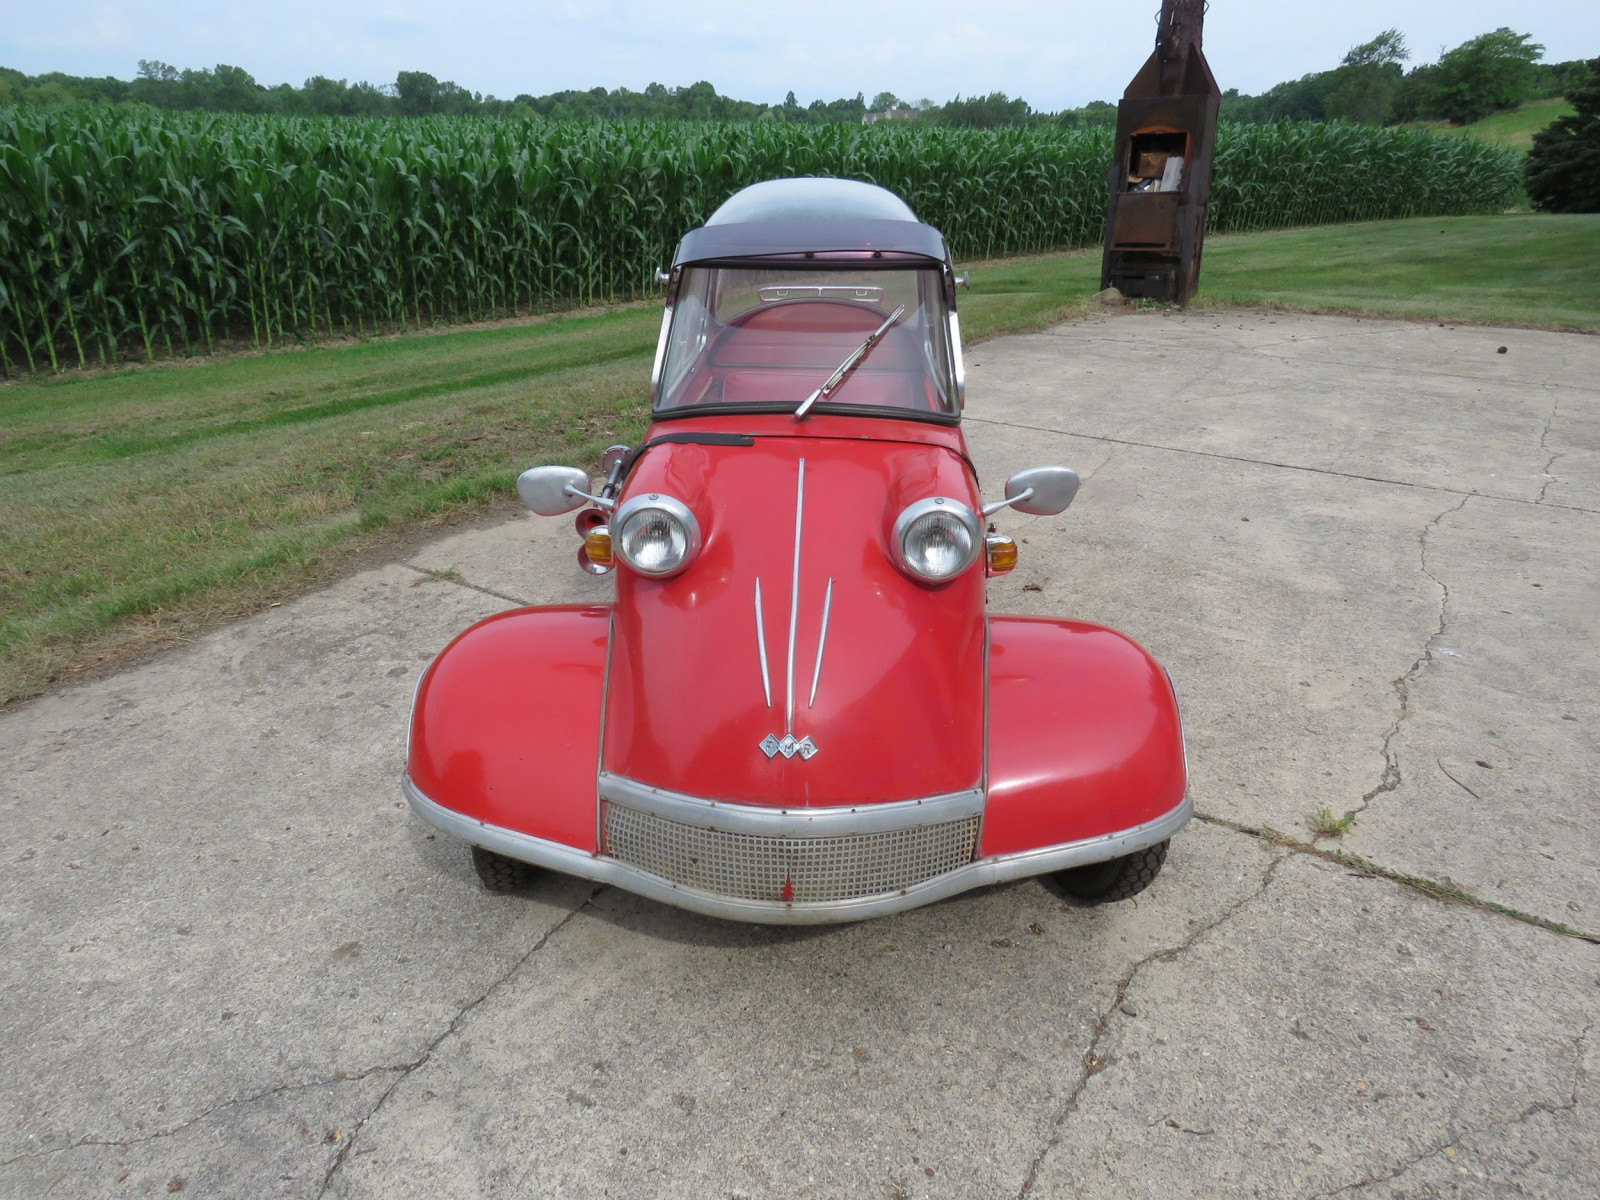 1959 Messerschmitt      KR-200 BubbleTop Coupe - Image 2